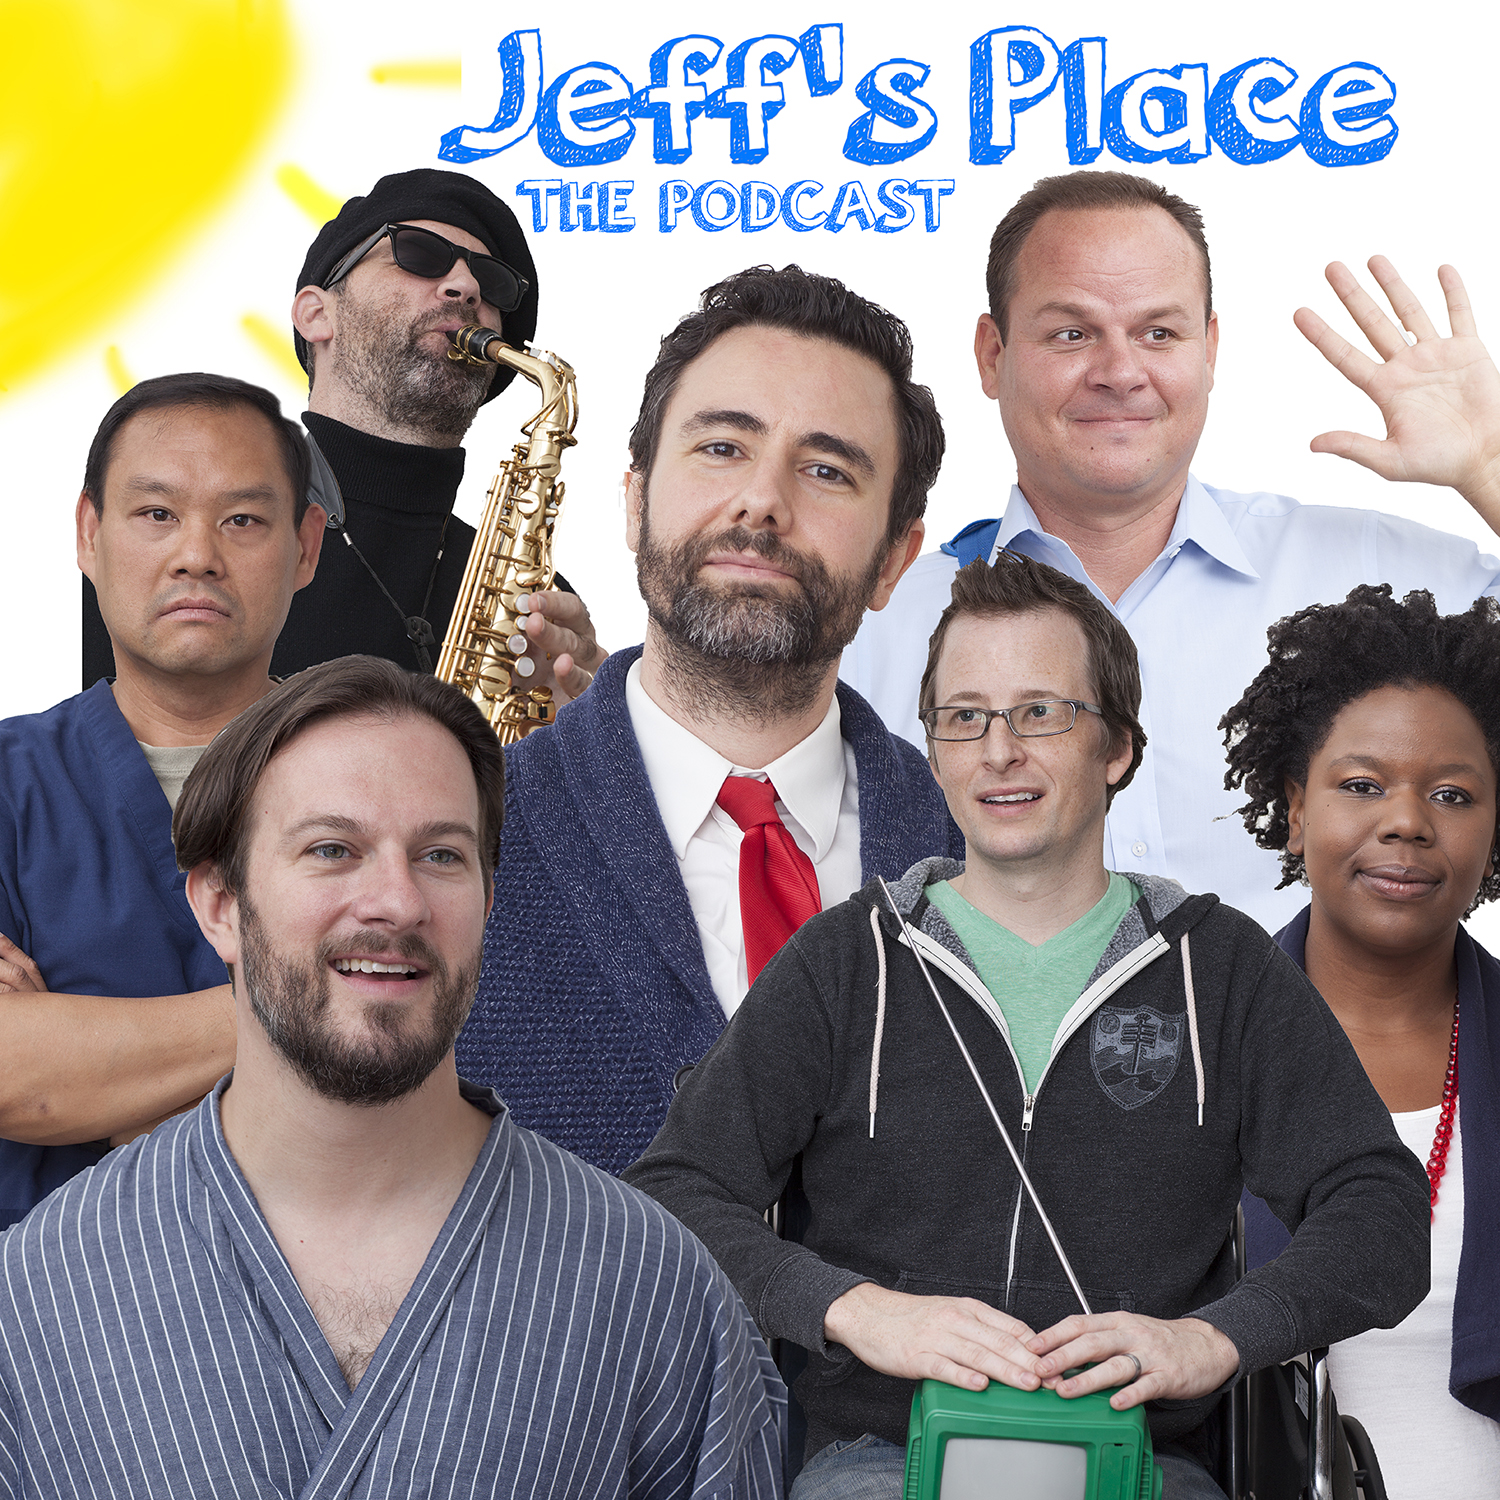 JeffsPlaceFinalPosterTHEPODCAST.jpg